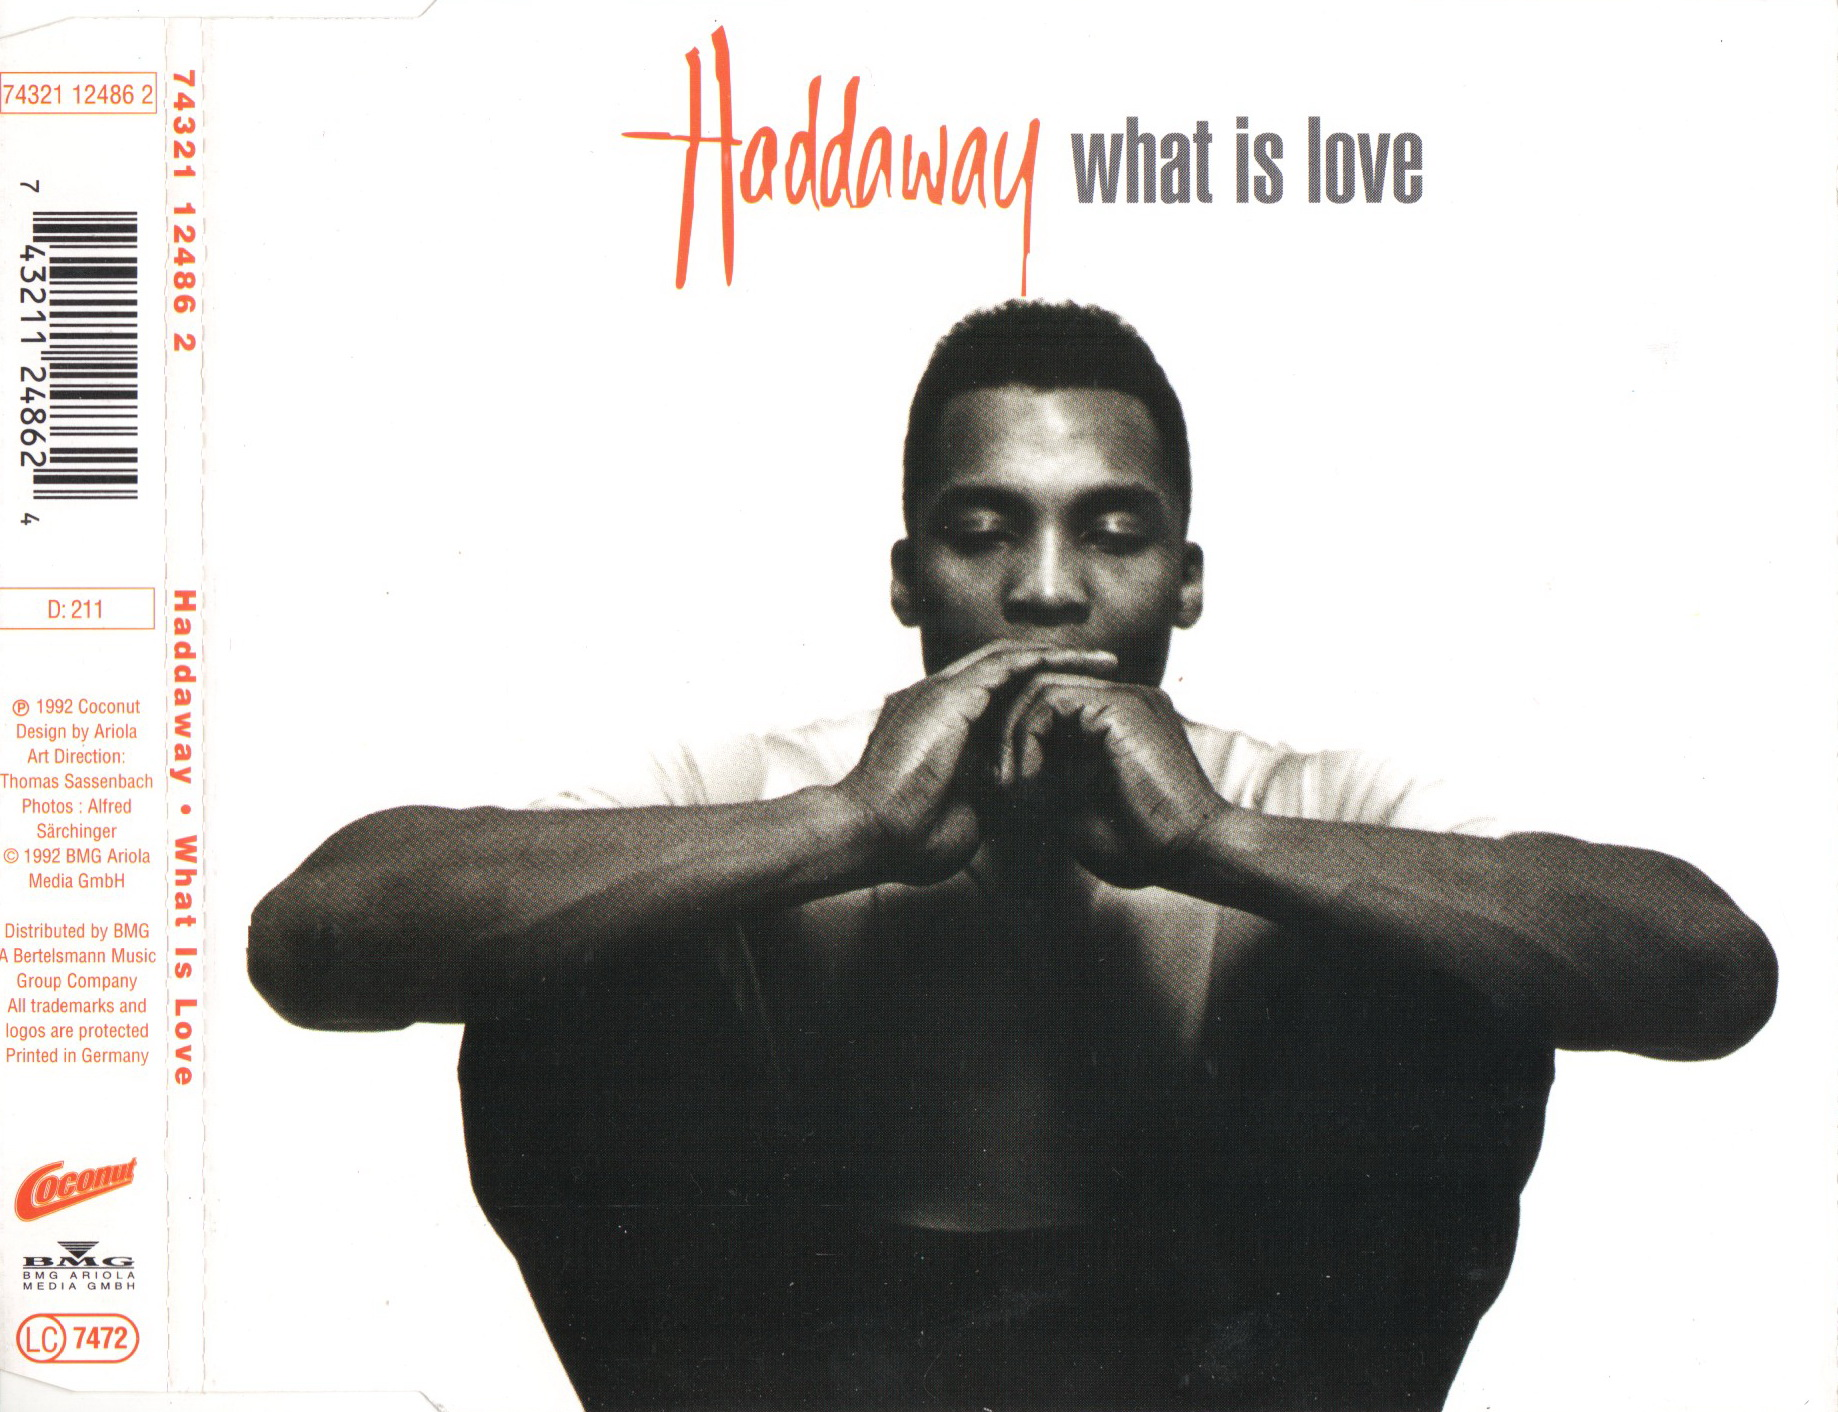 Haddaway photo